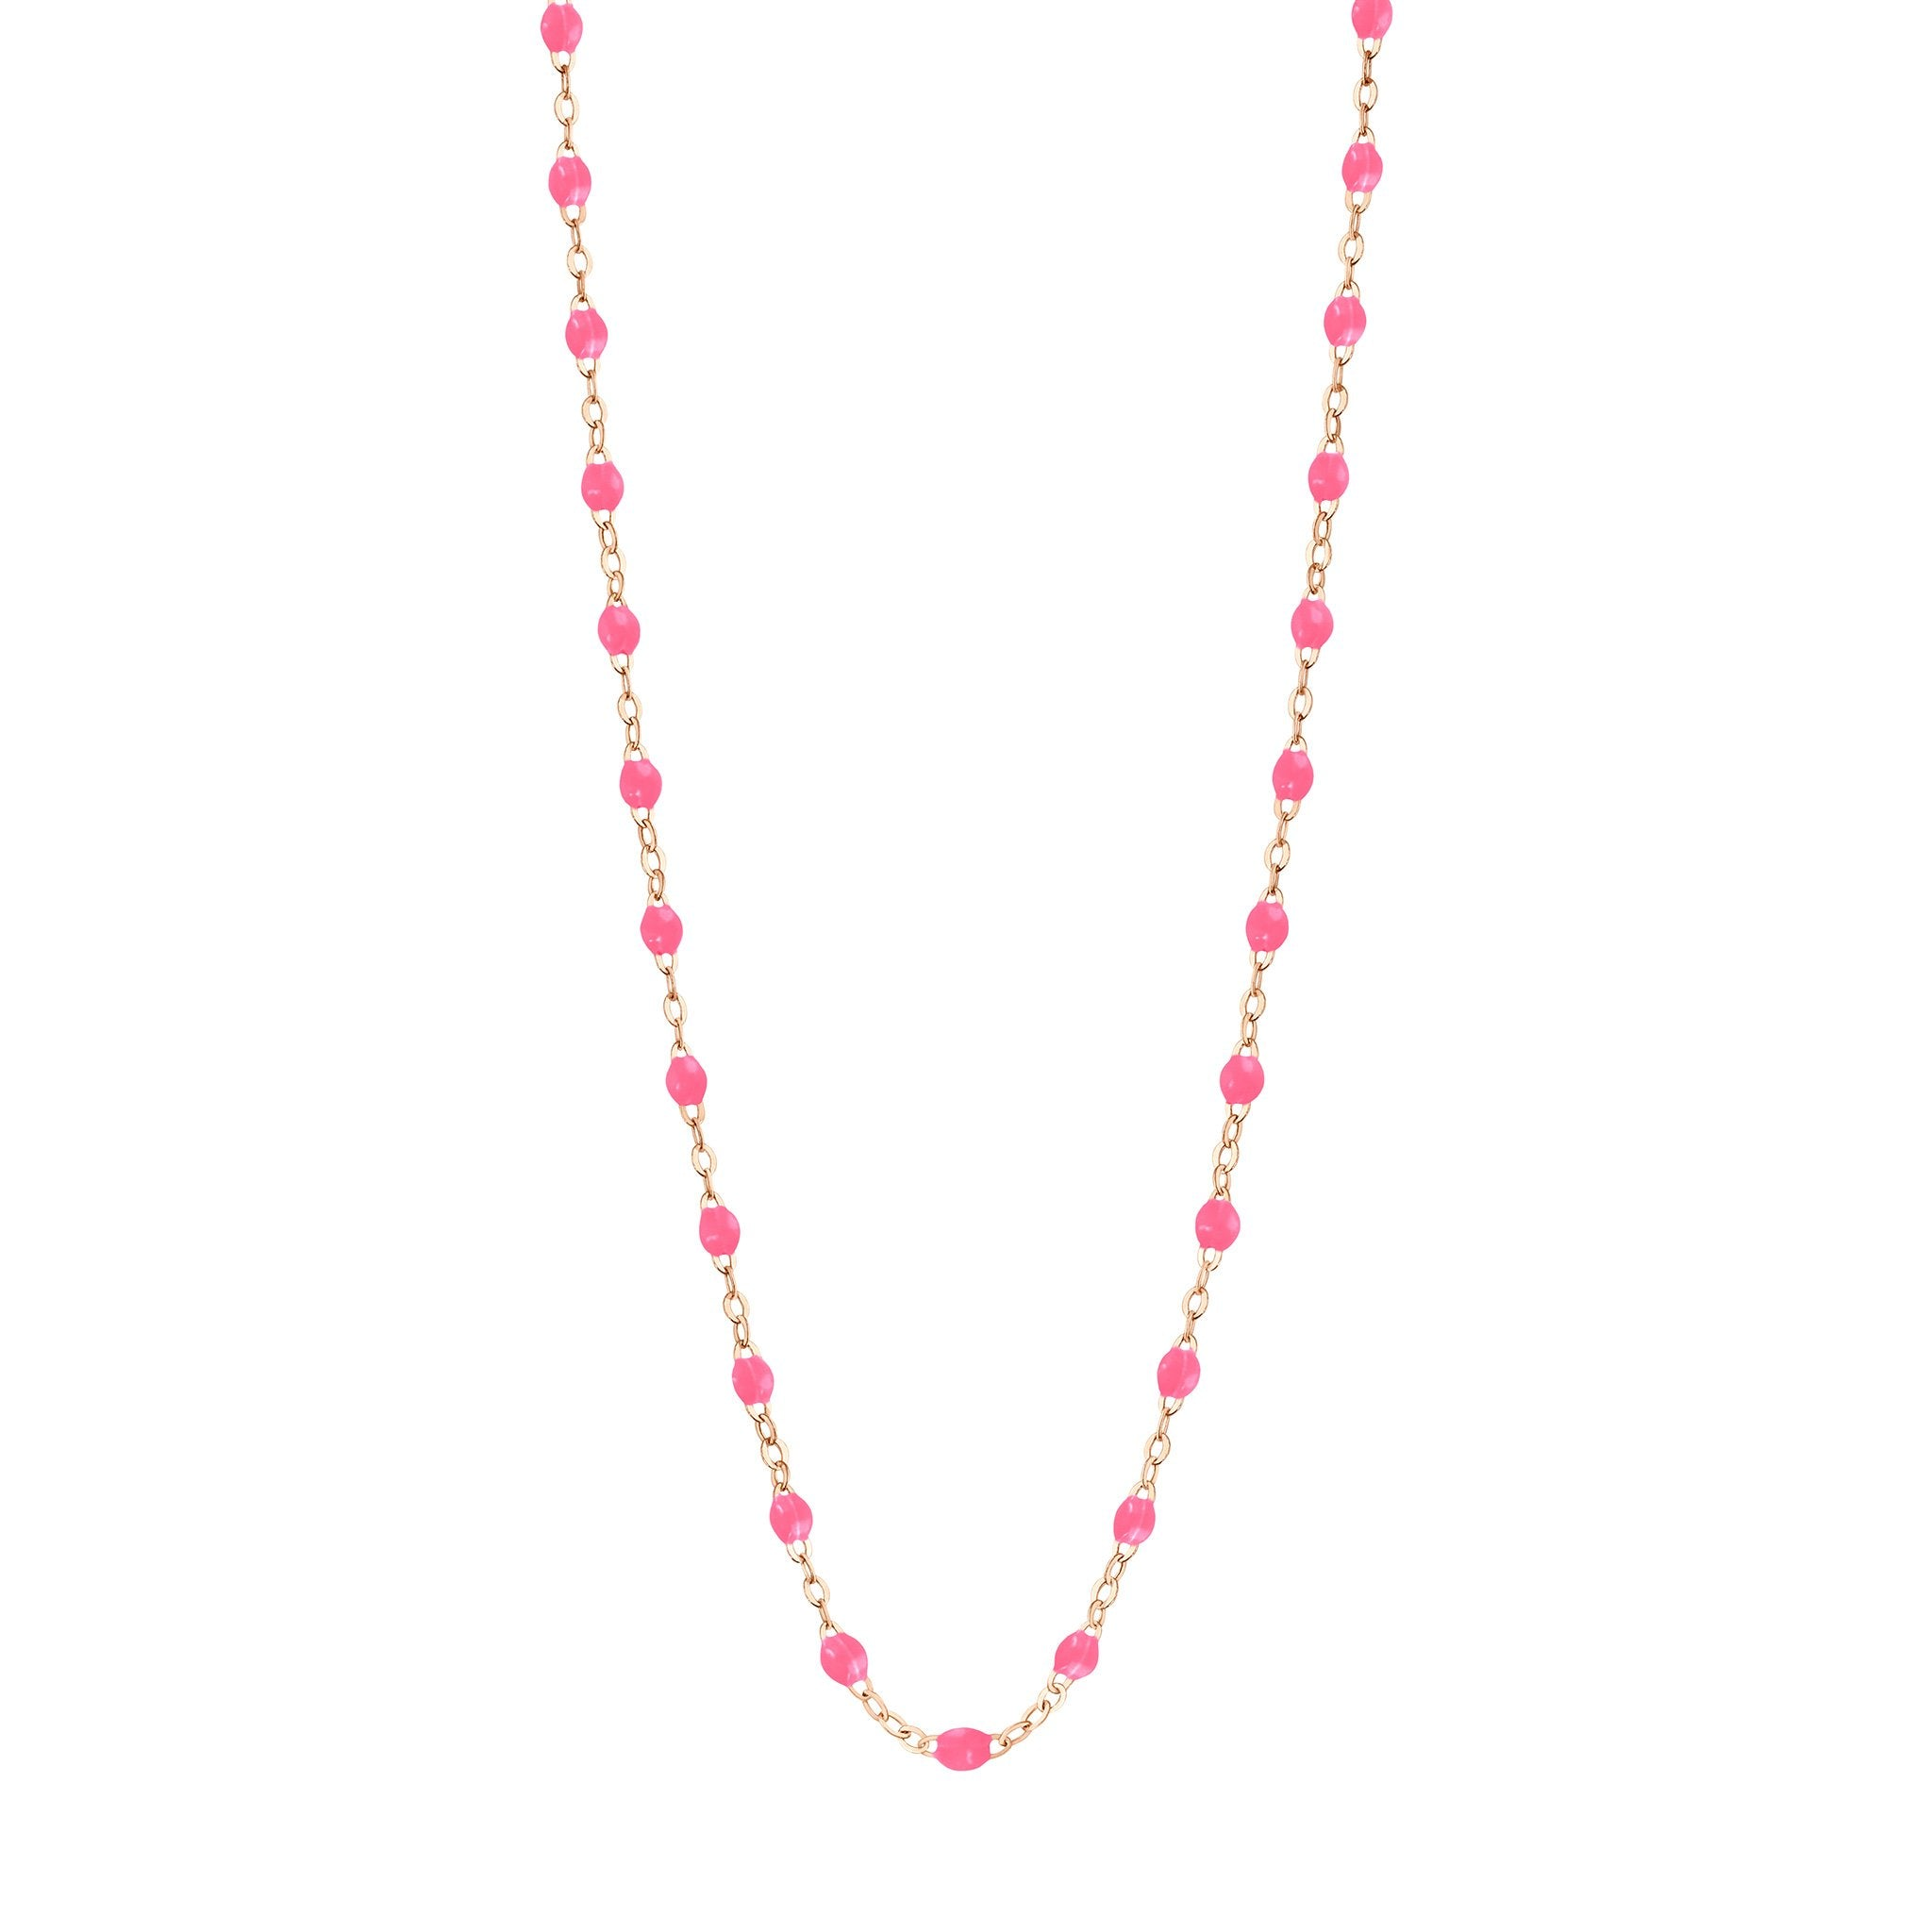 Gigi Clozeau - Classic Gigi Pink necklace, Rose Gold, 16.5